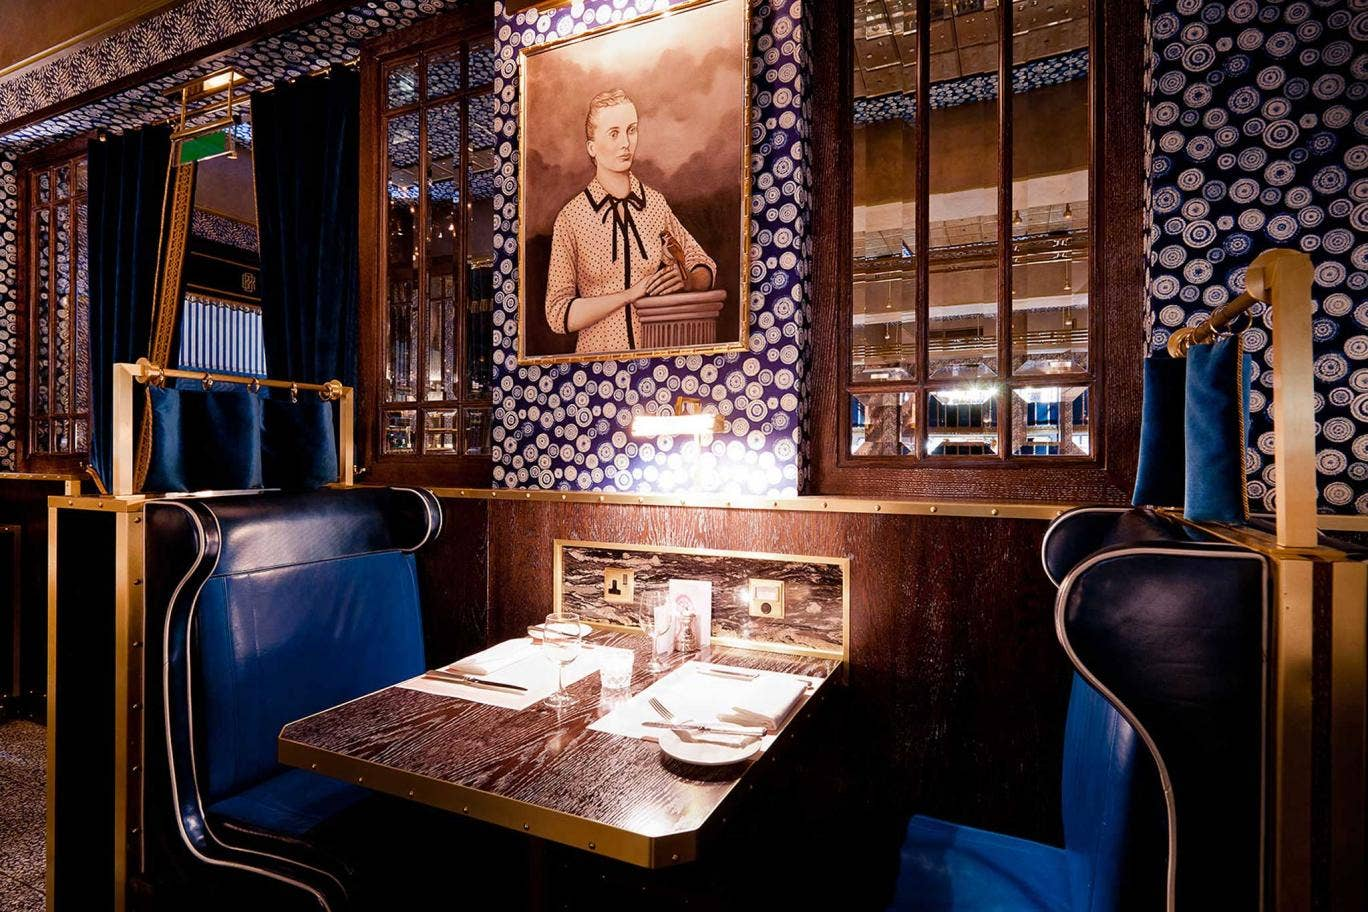 Bob Bob Ricard's décor resembles something out of The Great Gatsby